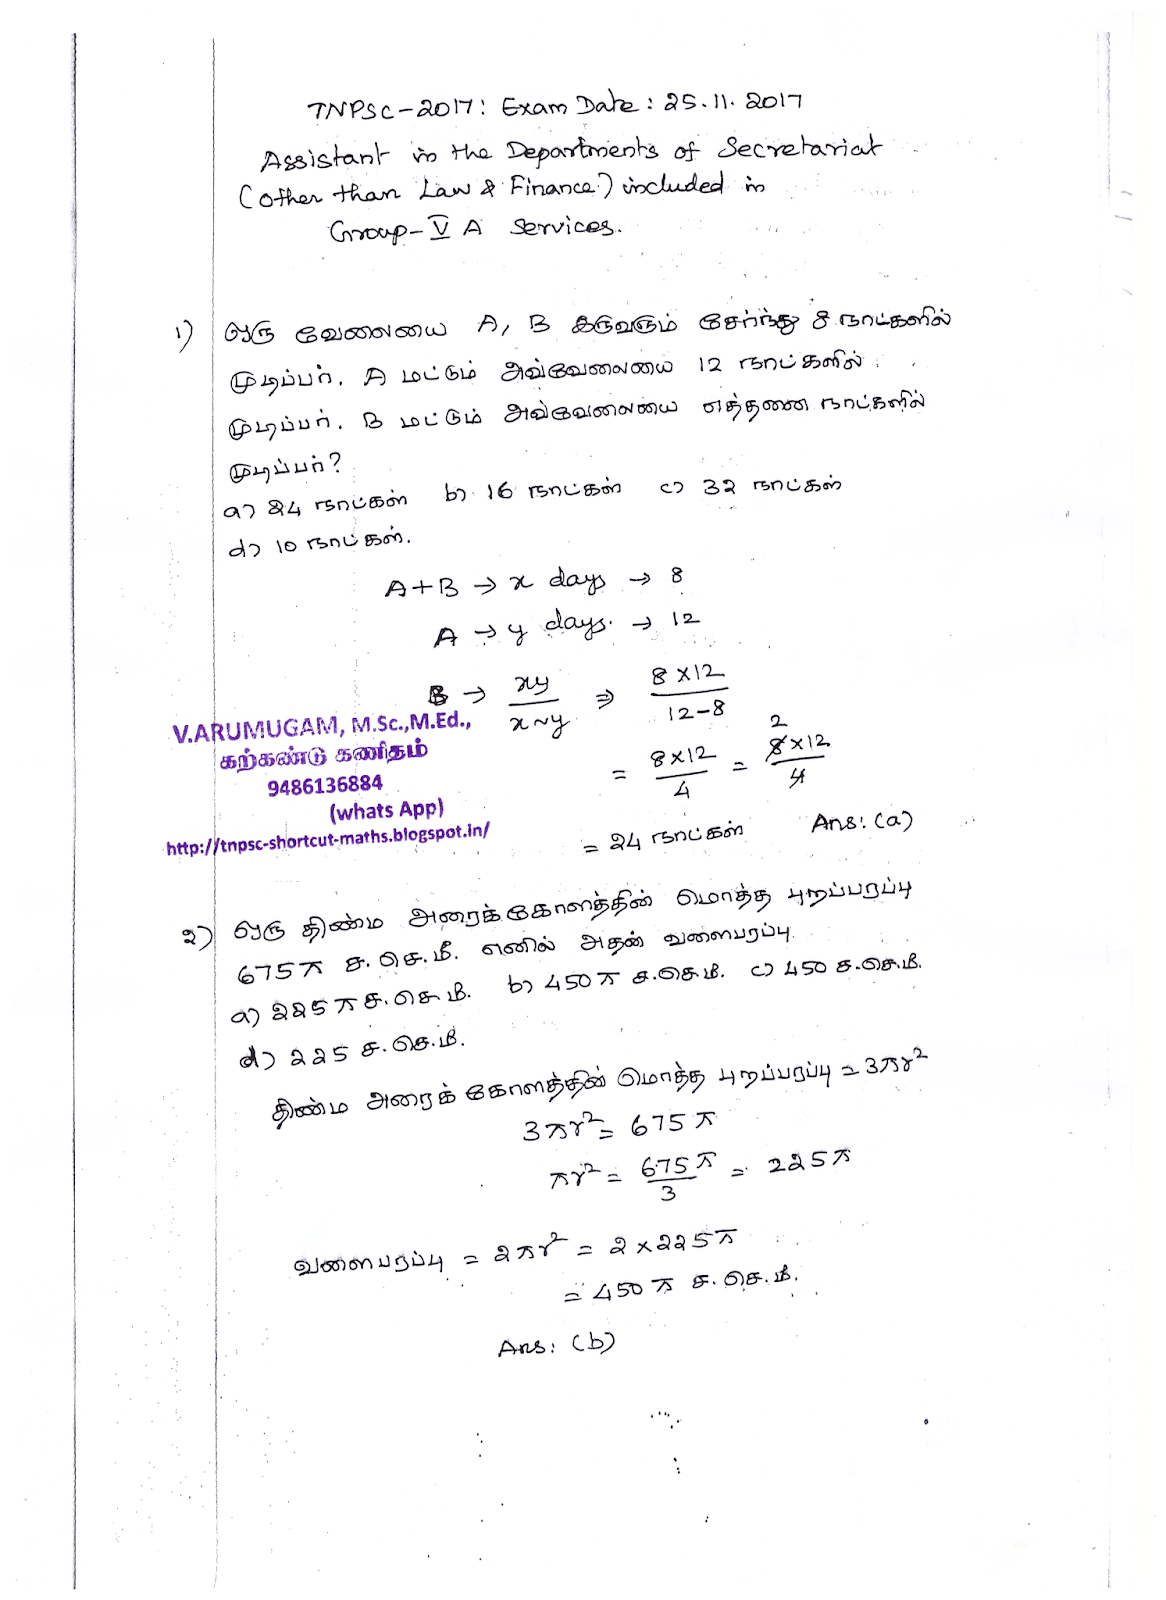 TNPSC-2017-ASSISTANT IN THE DEPARTMENTS OF SECRETARIAT (OTHER THAN LAW AND FINANCE) INCLUDED IN GROUP-V A SERVICES EXAM-EXAM DATE: 25.11.2017